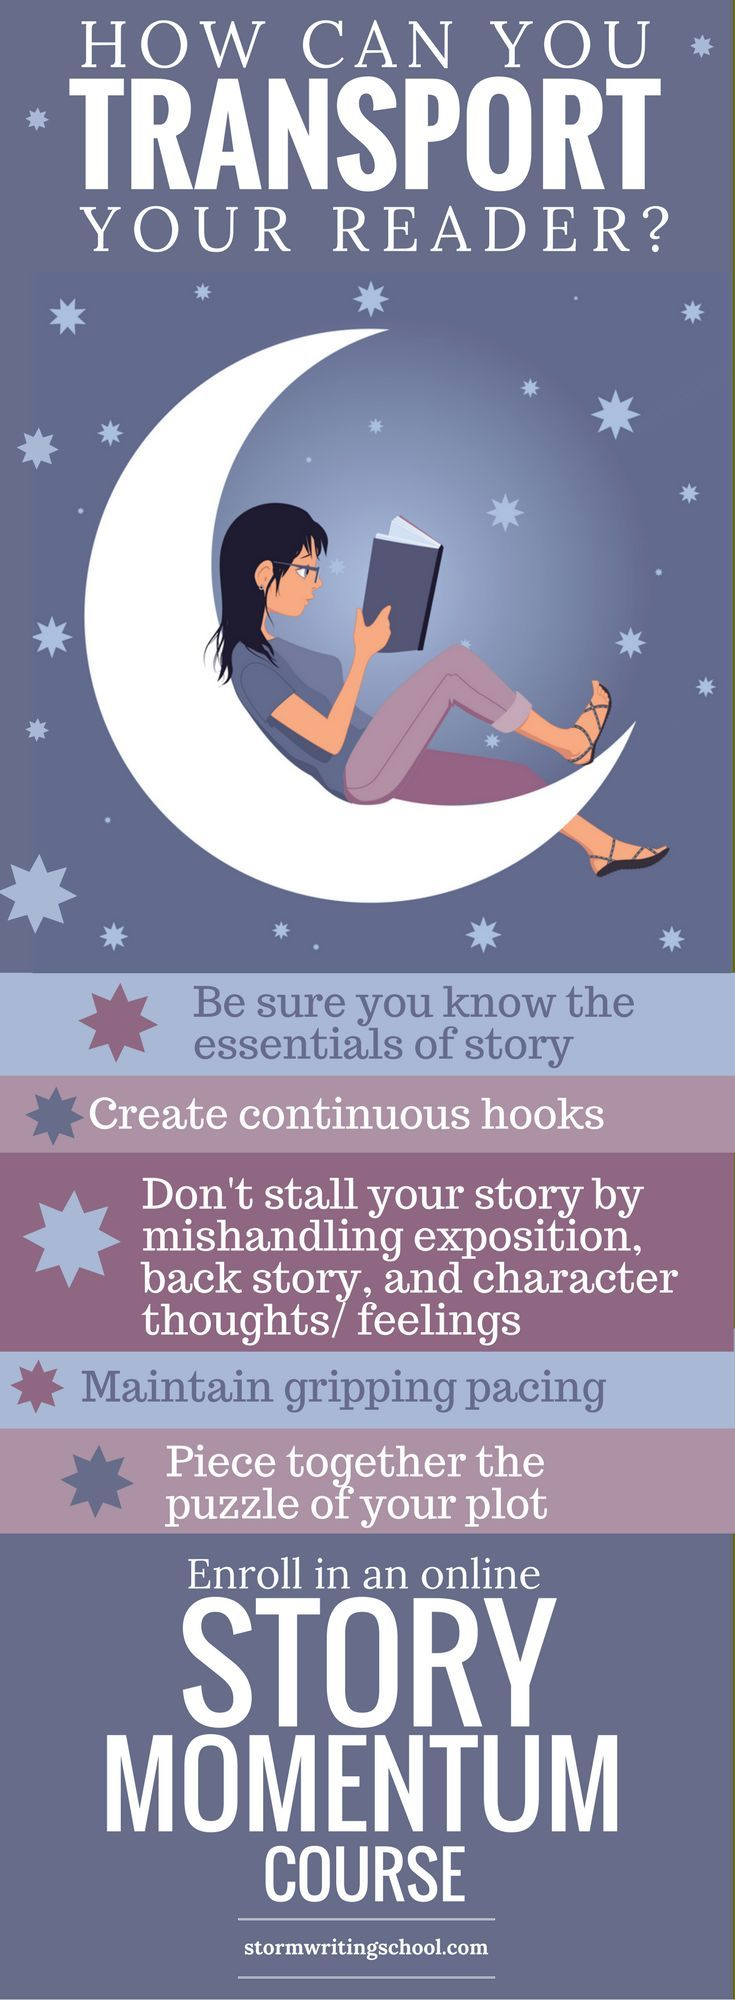 Superb online course on writing engaging stories. | Storm Writing School